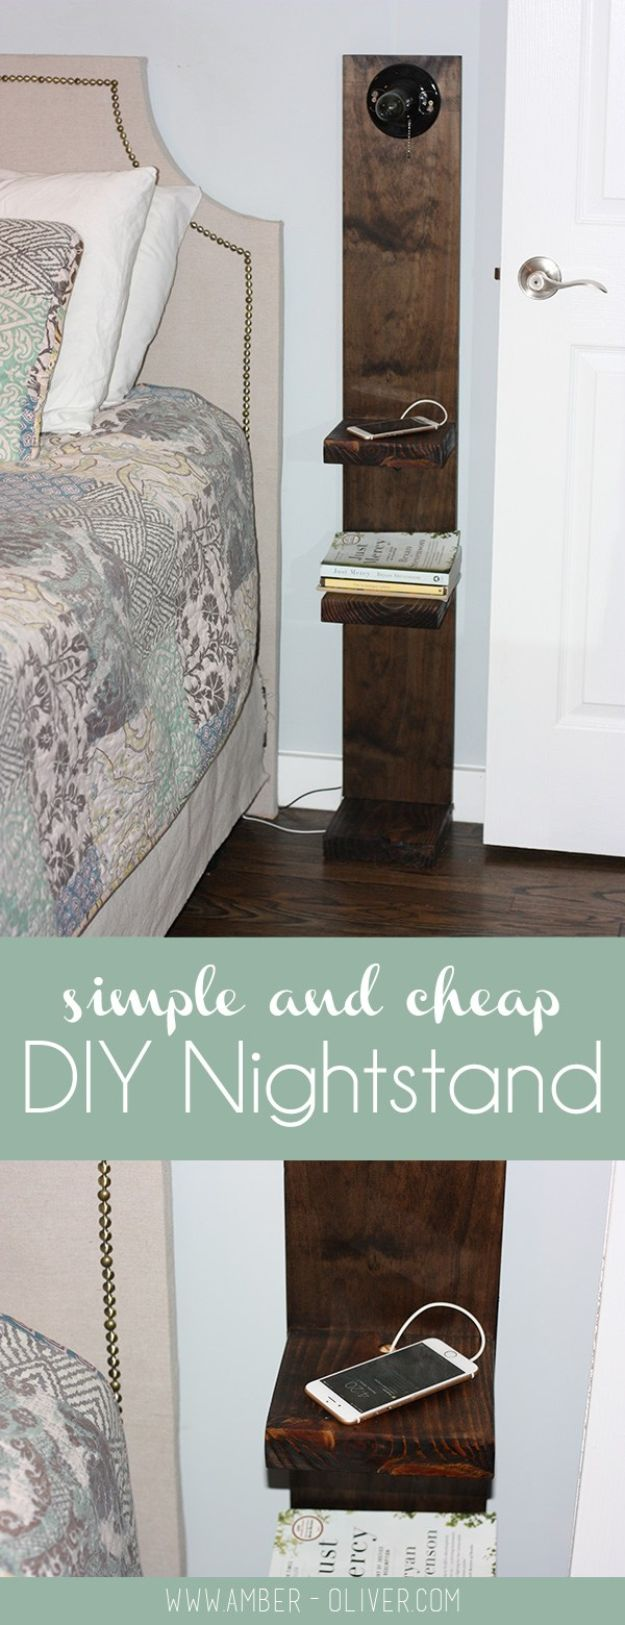 DIY Modern Home Decor - DIY Rustic Nightstand - Room Ideas, Wall Art on A Budget, Farmhouse Style Projects - Easy DIY Ideas and Decorations for Apartments, Living Room, Bedroom, Kitchen and Bath - Fixer Upper Tips and Tricks